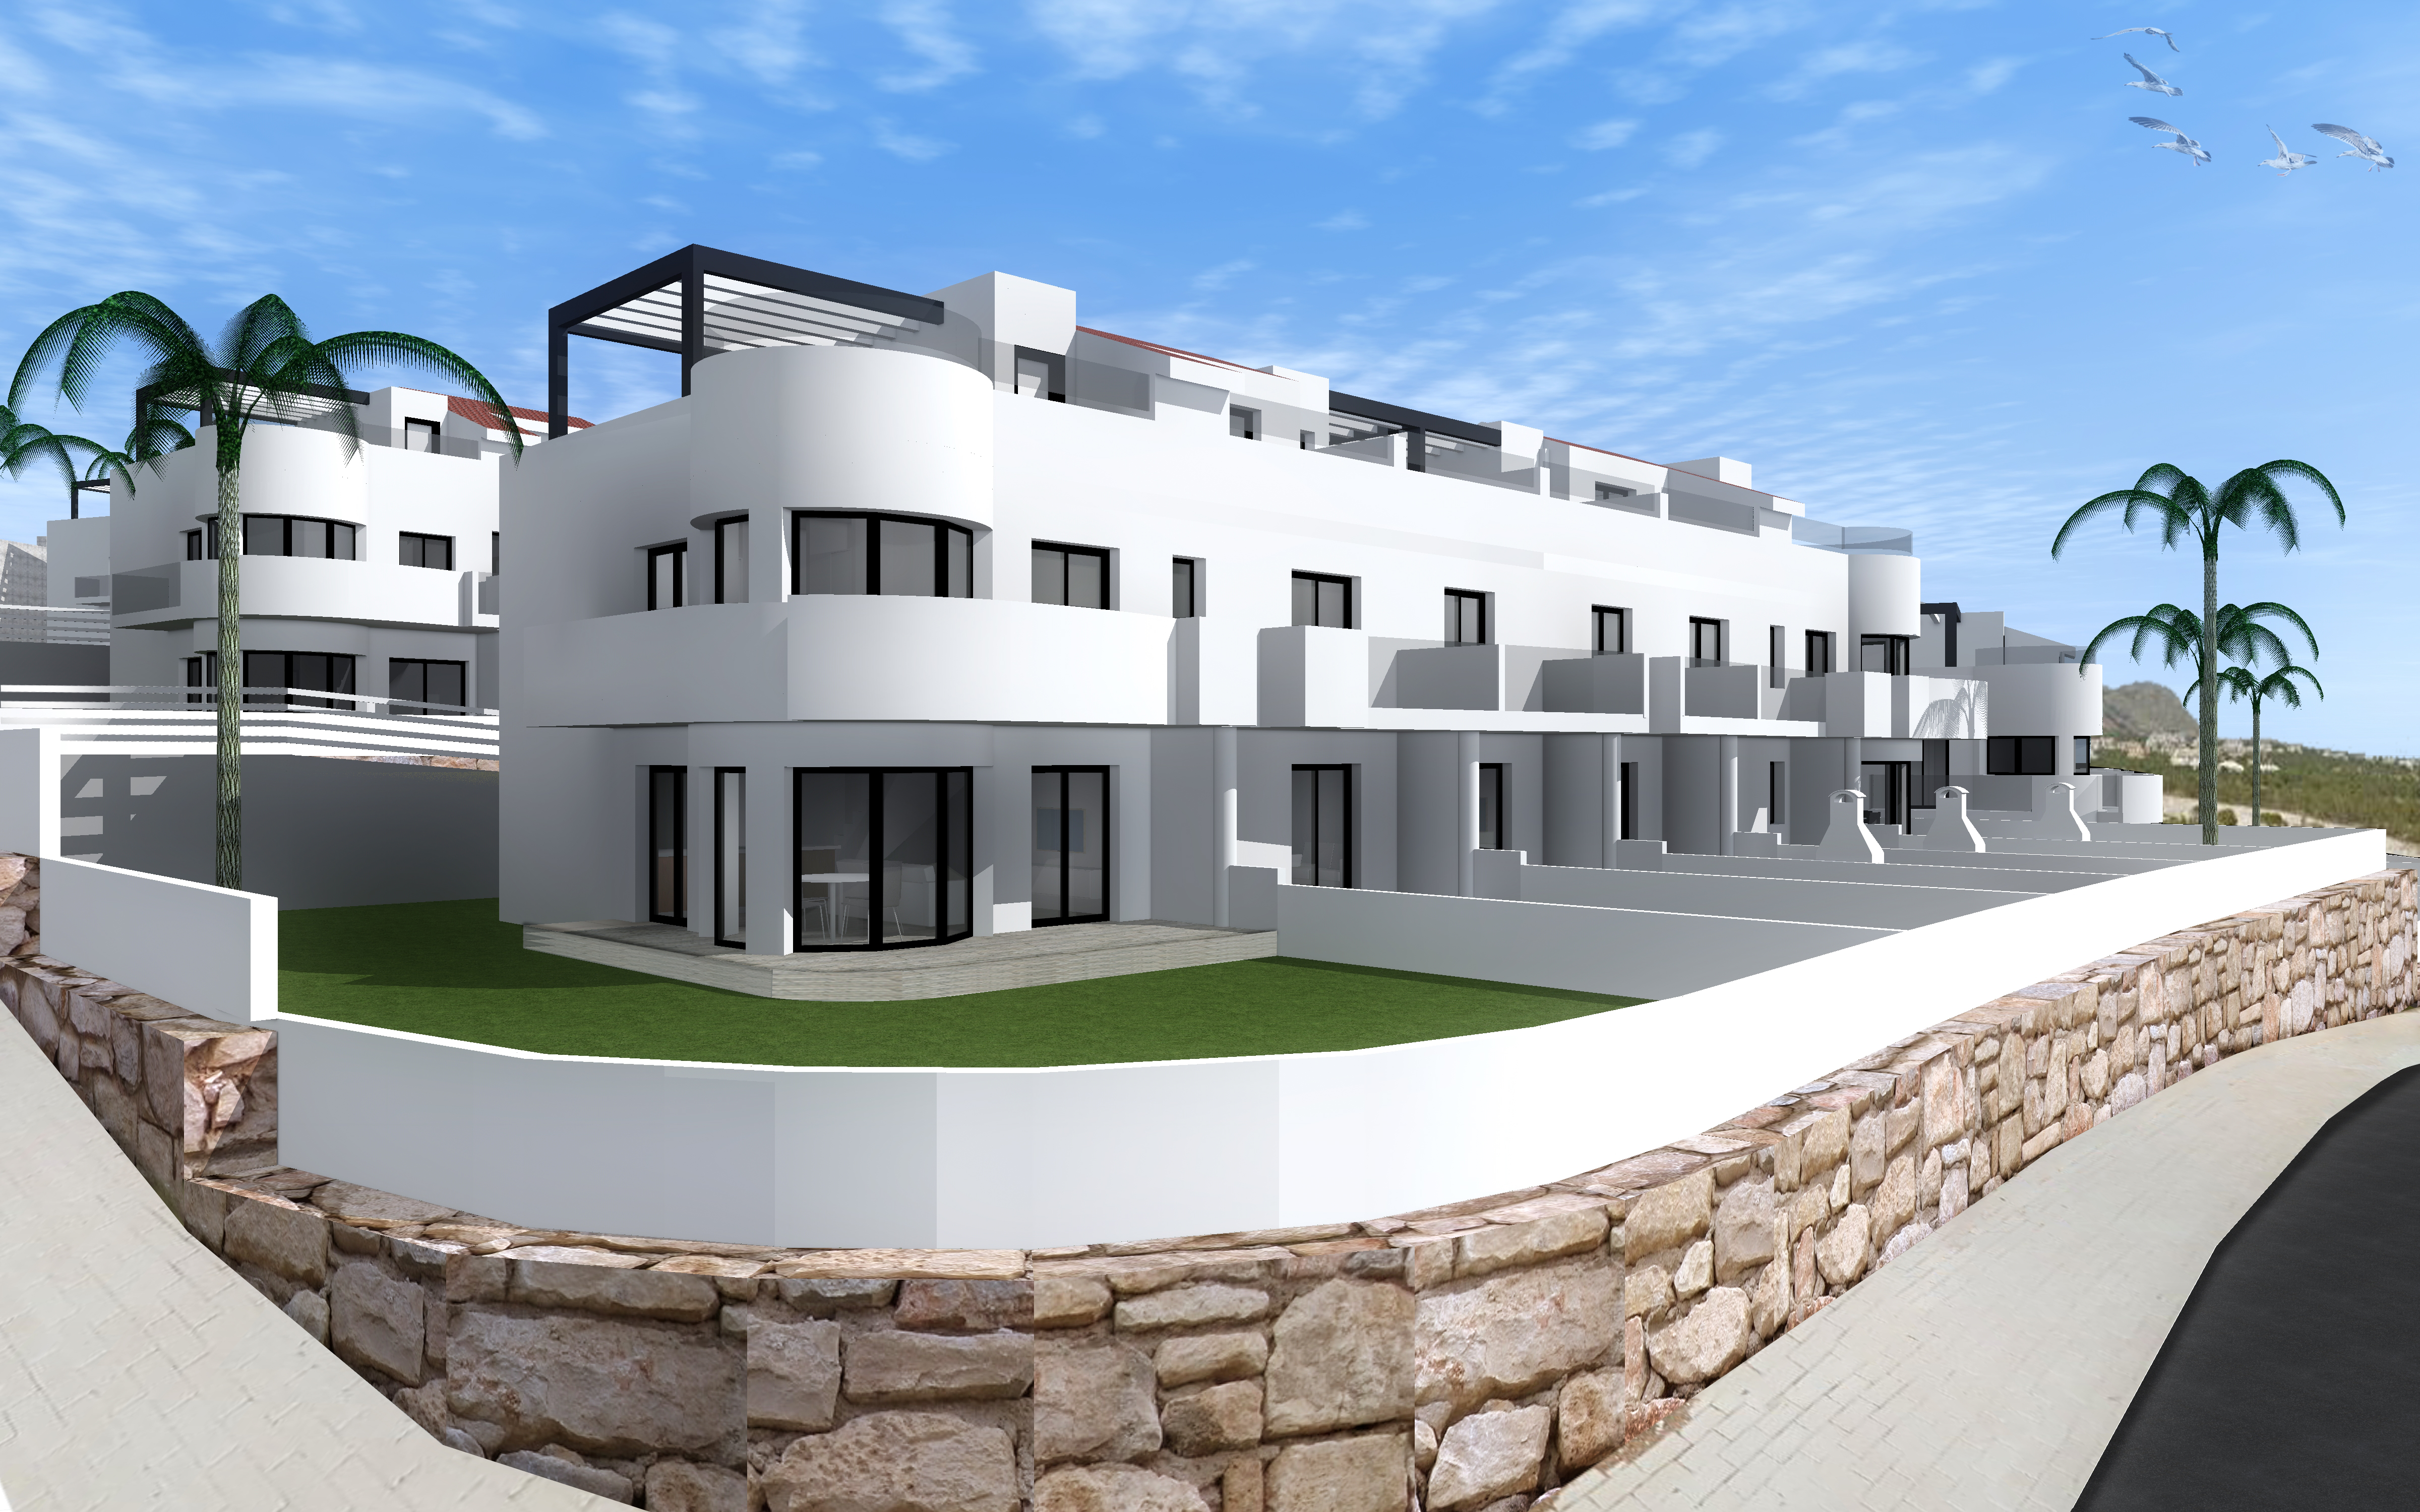 New Build in Benidorm